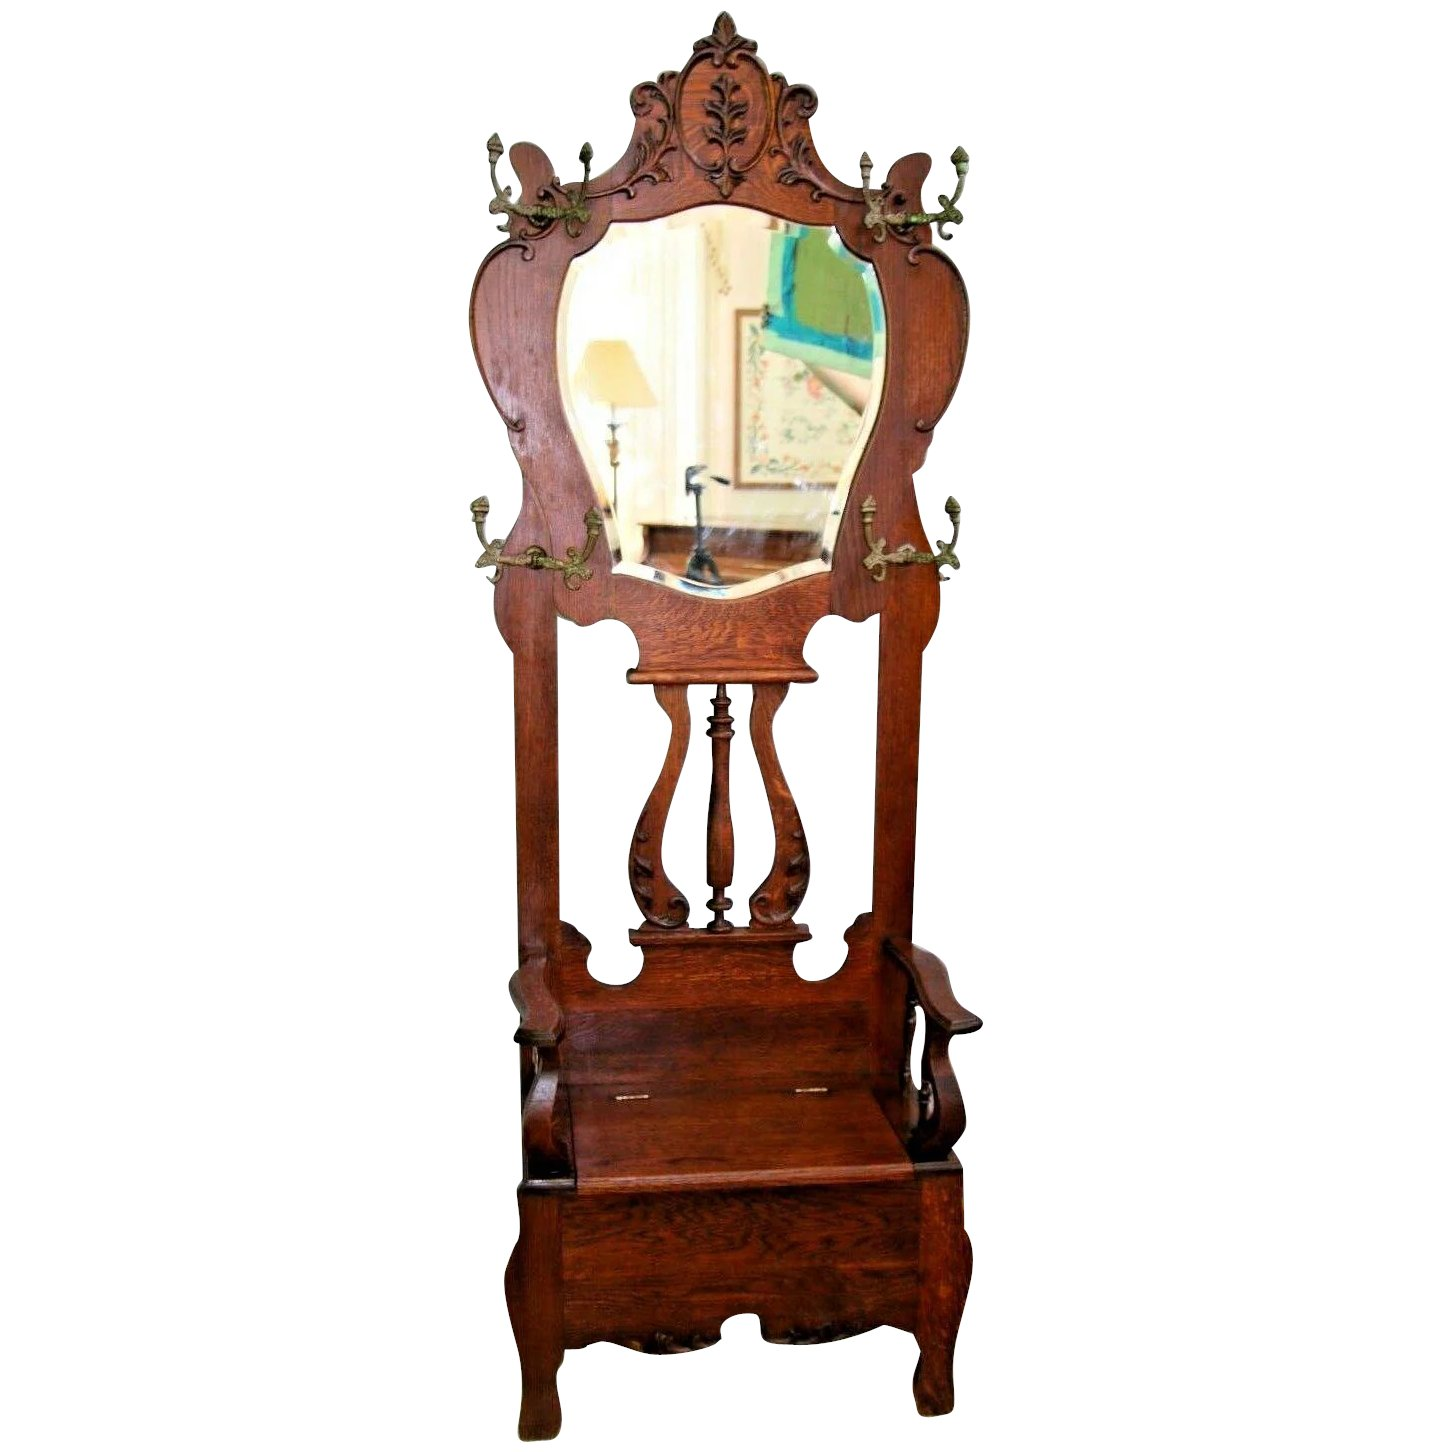 Vintage Hall Tree Throne Style Tiger Oak Beveled Mirror Seat Bench At Melrose Vintage And Antique Furniture Ruby Lane